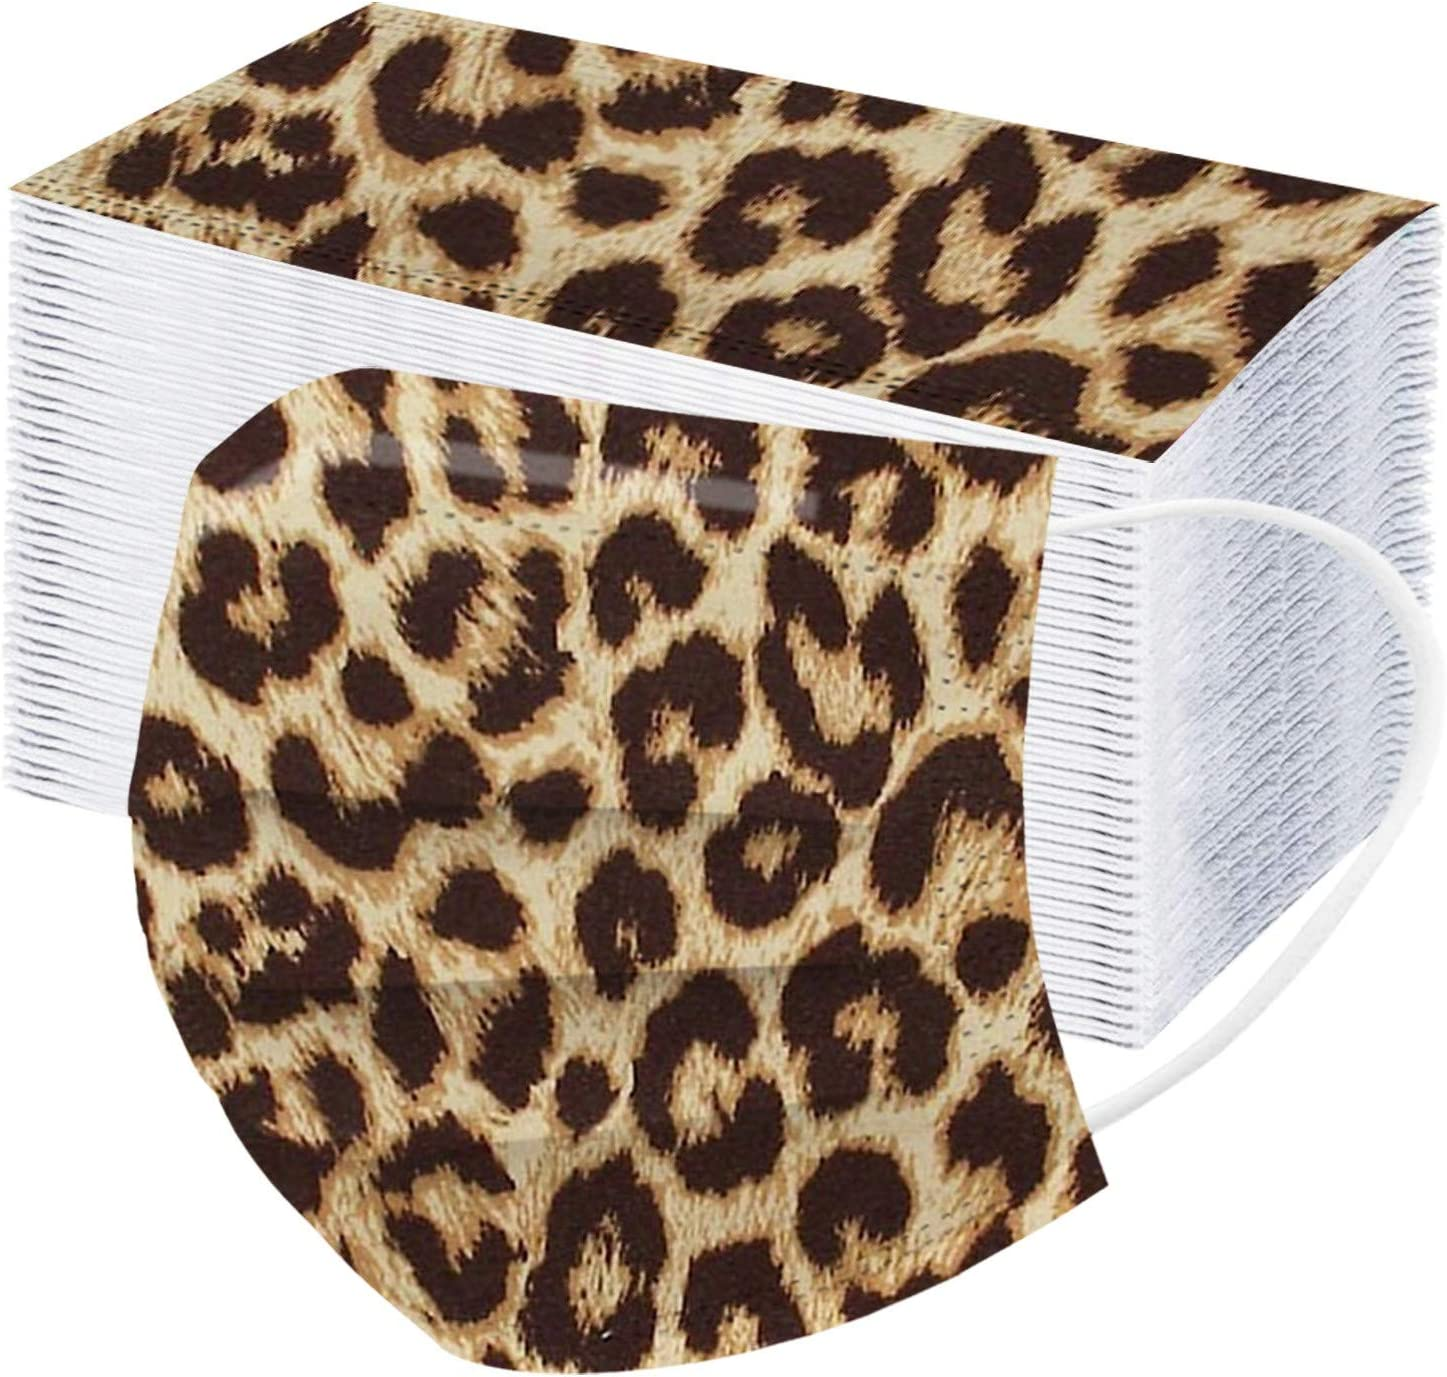 10 20 50 Topics on TV Max 56% OFF 100pcs Adult Non-W Cheetah 3-Layer Disposable_Face_Mask